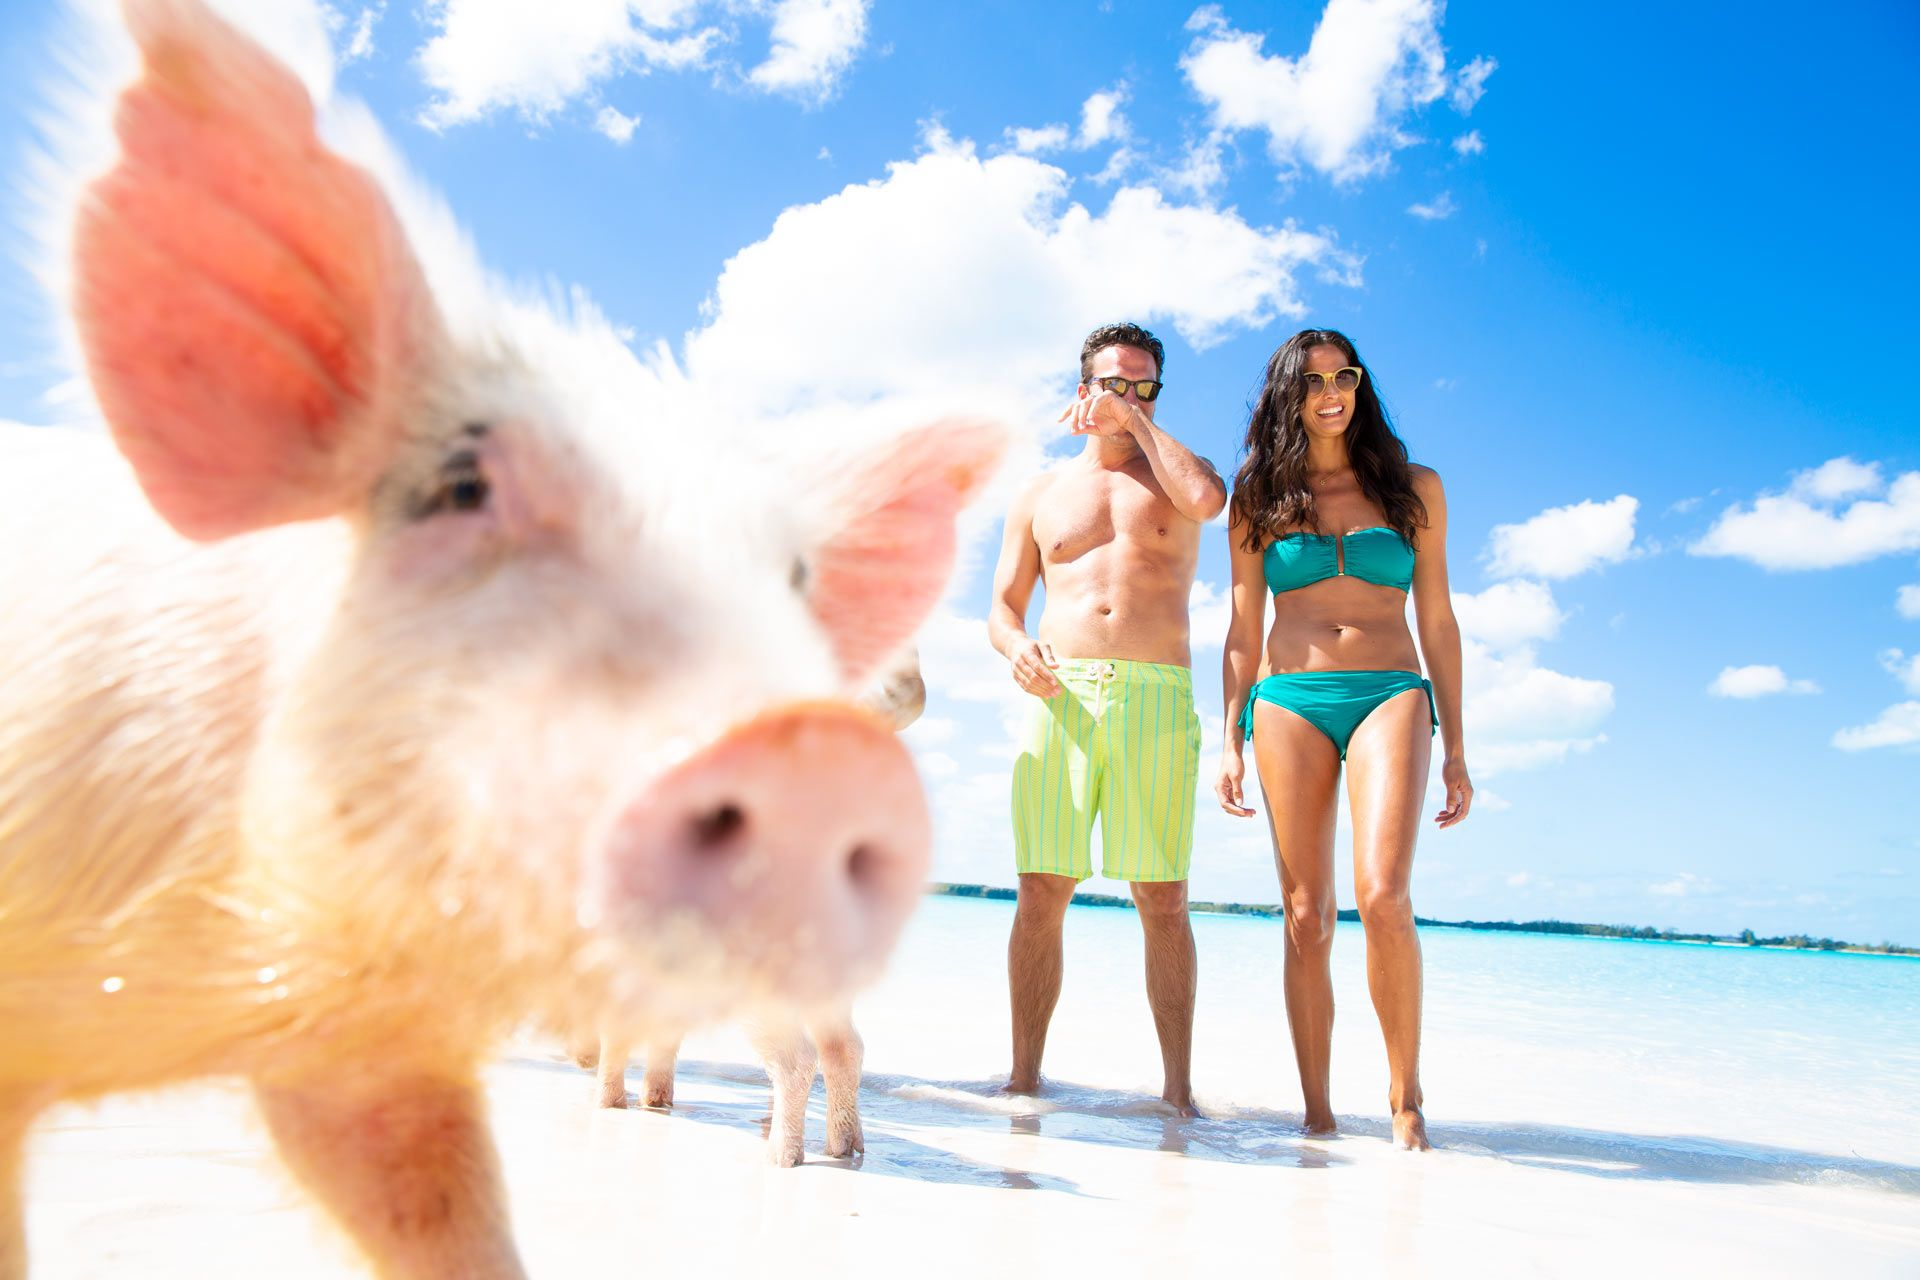 Pig and couple on beach